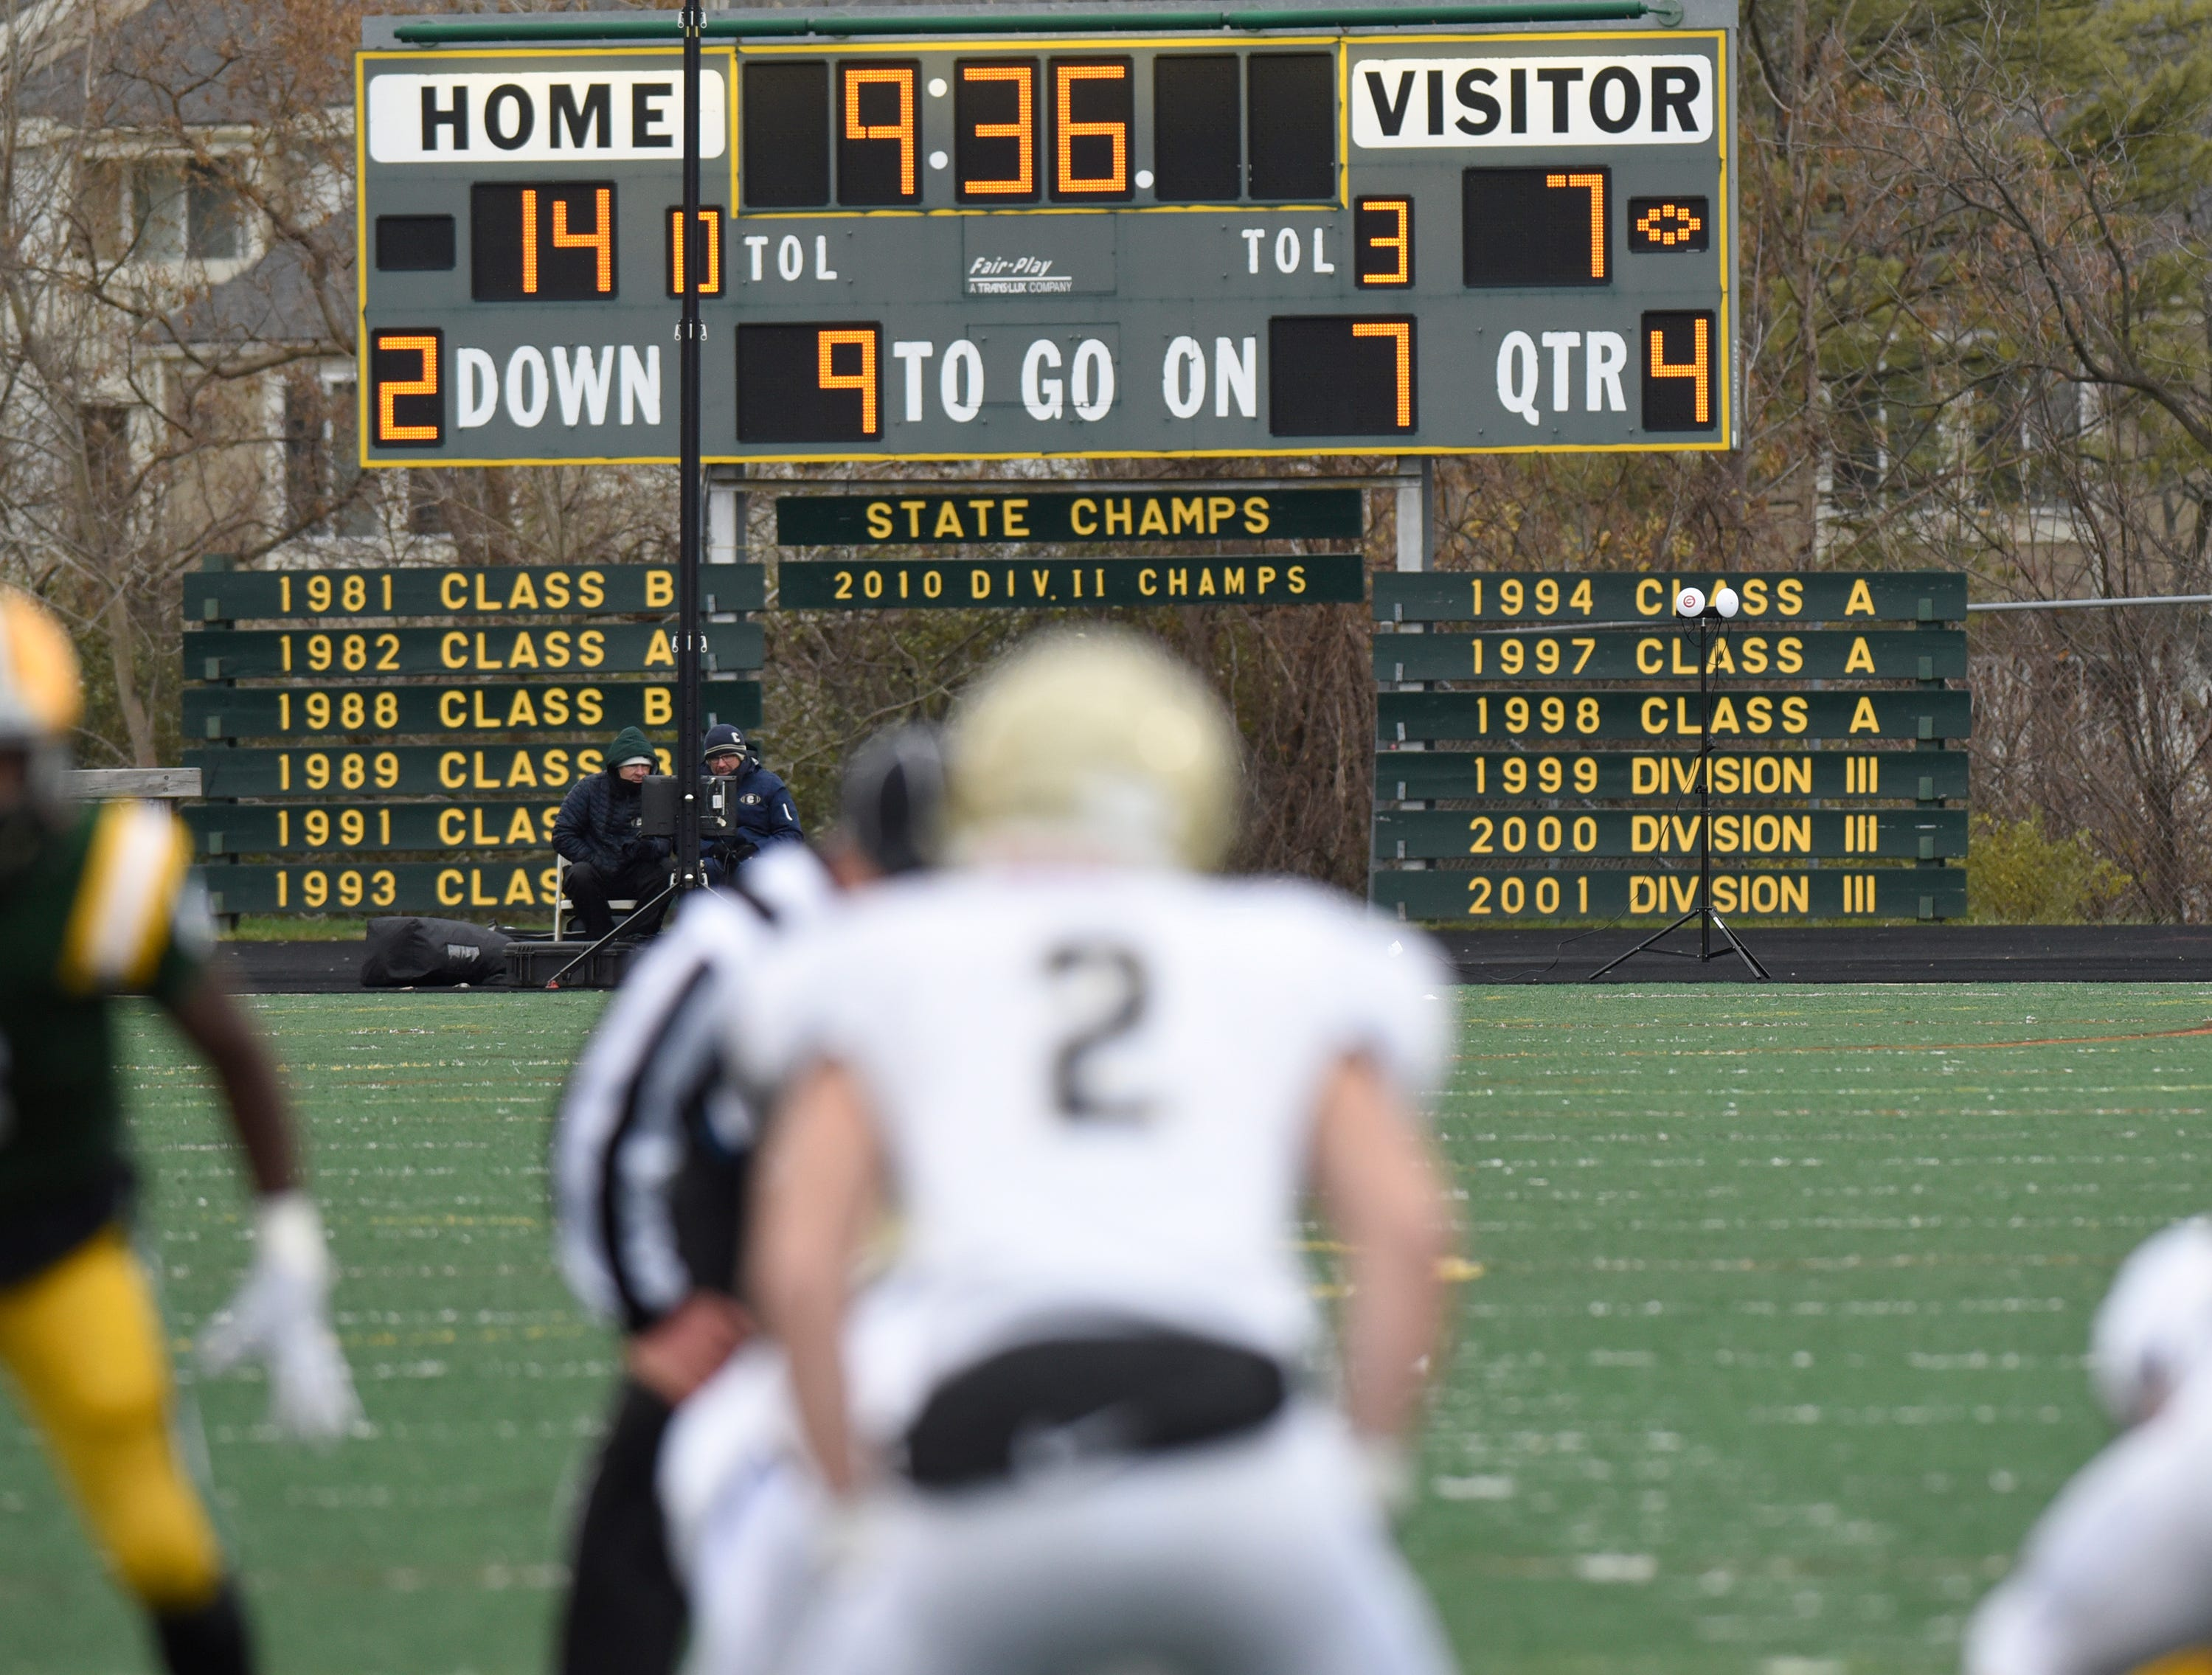 The scoreboard tells the story of a long and storied program at Farmington Harrison - where the Hawks fell 21-14 to Chelsea in the Division 4 regional final played at Buller Field Nov. 10, 2018